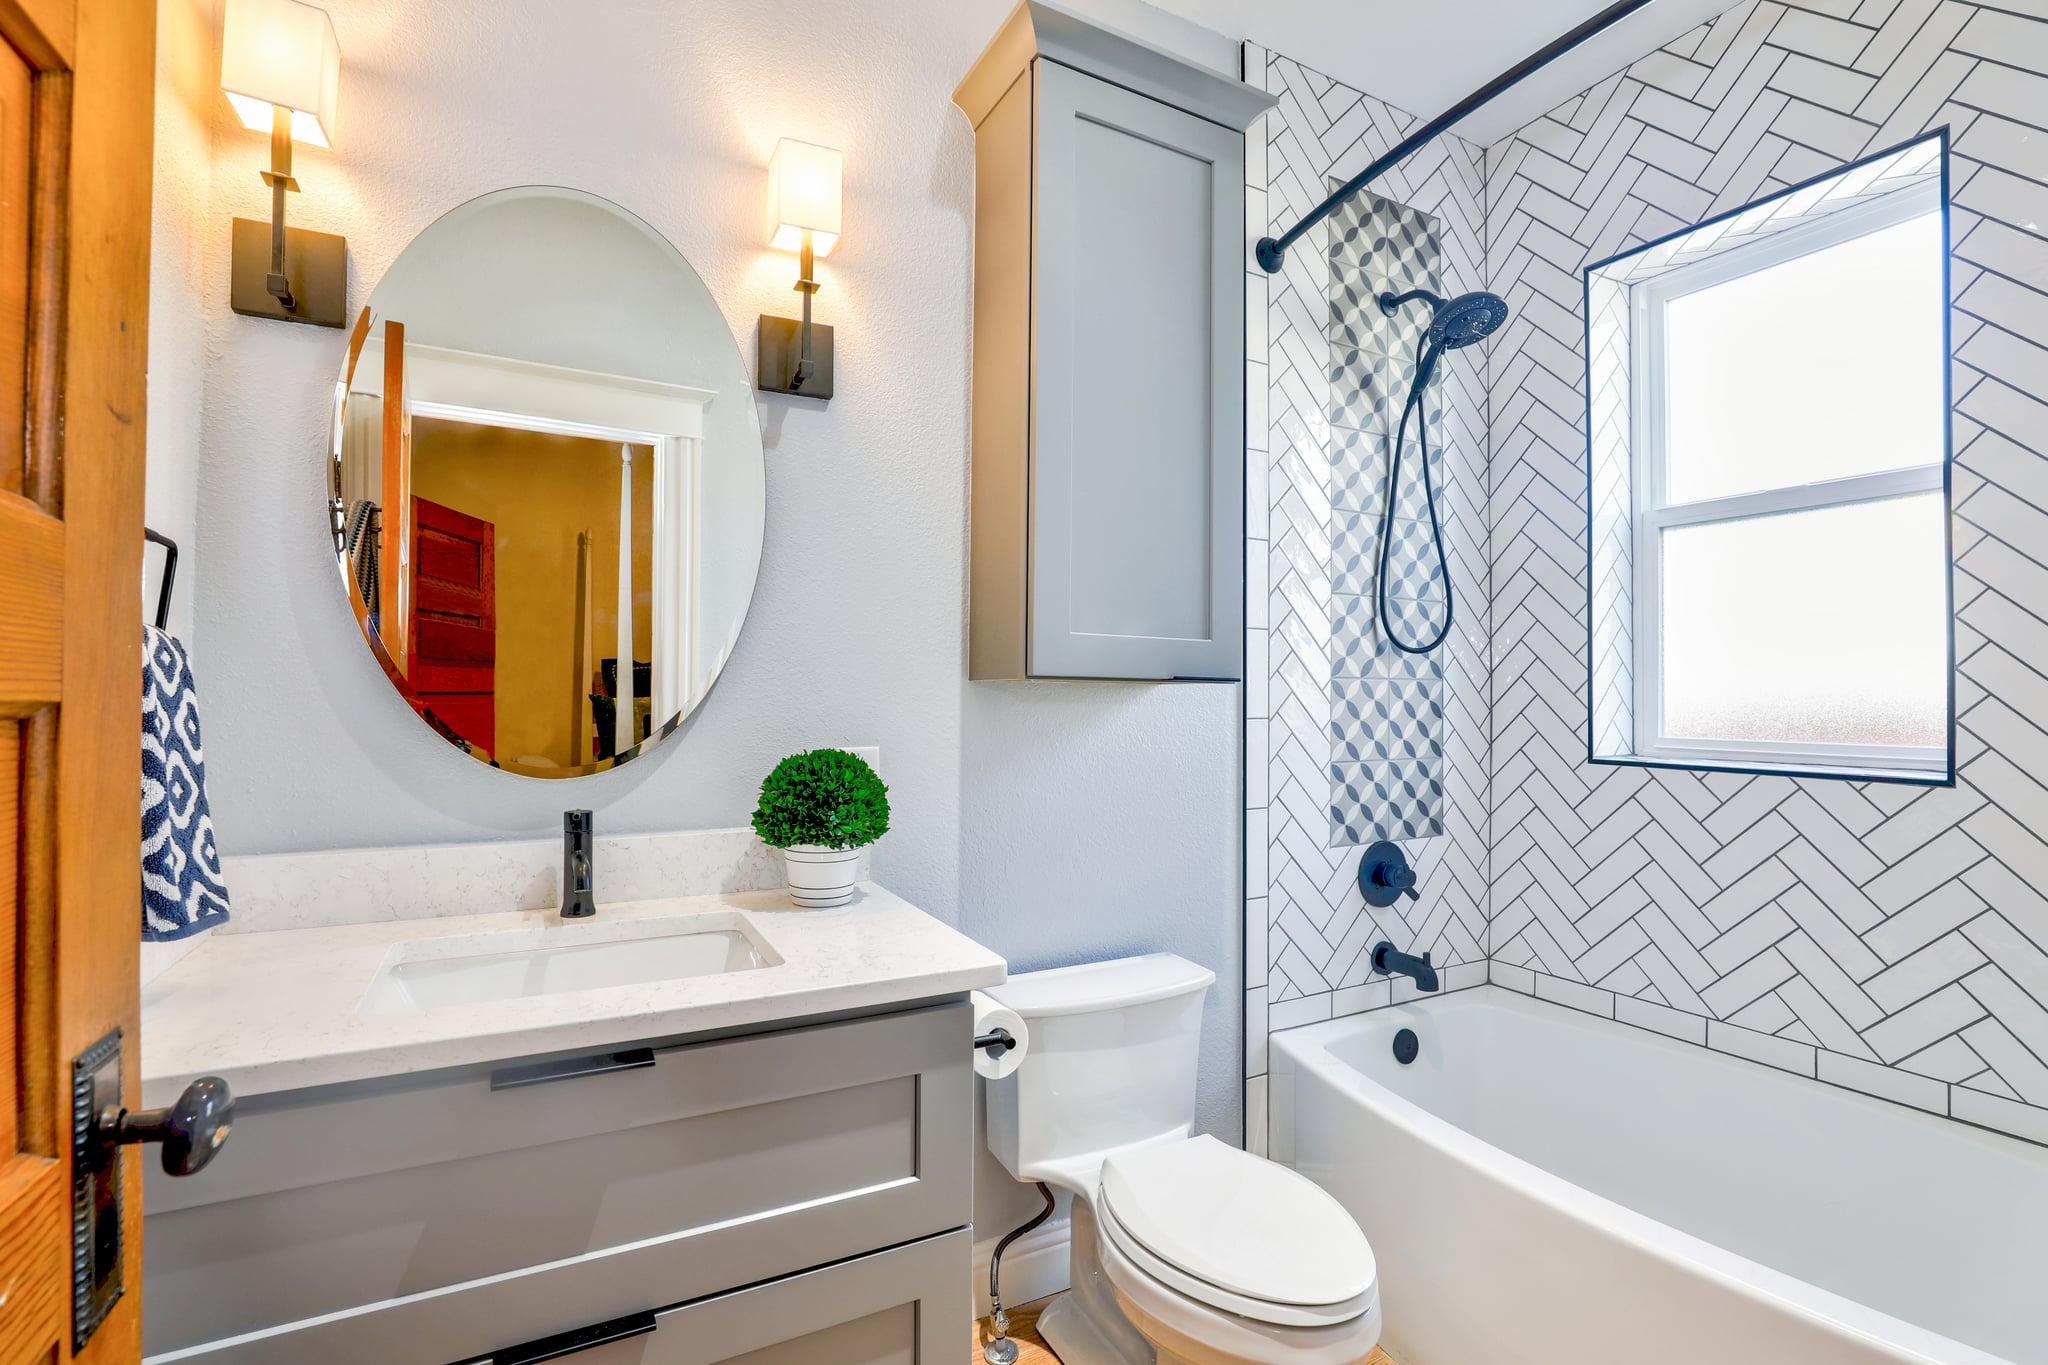 How to Keep Your Bathroom Clean | POPSUGAR Home